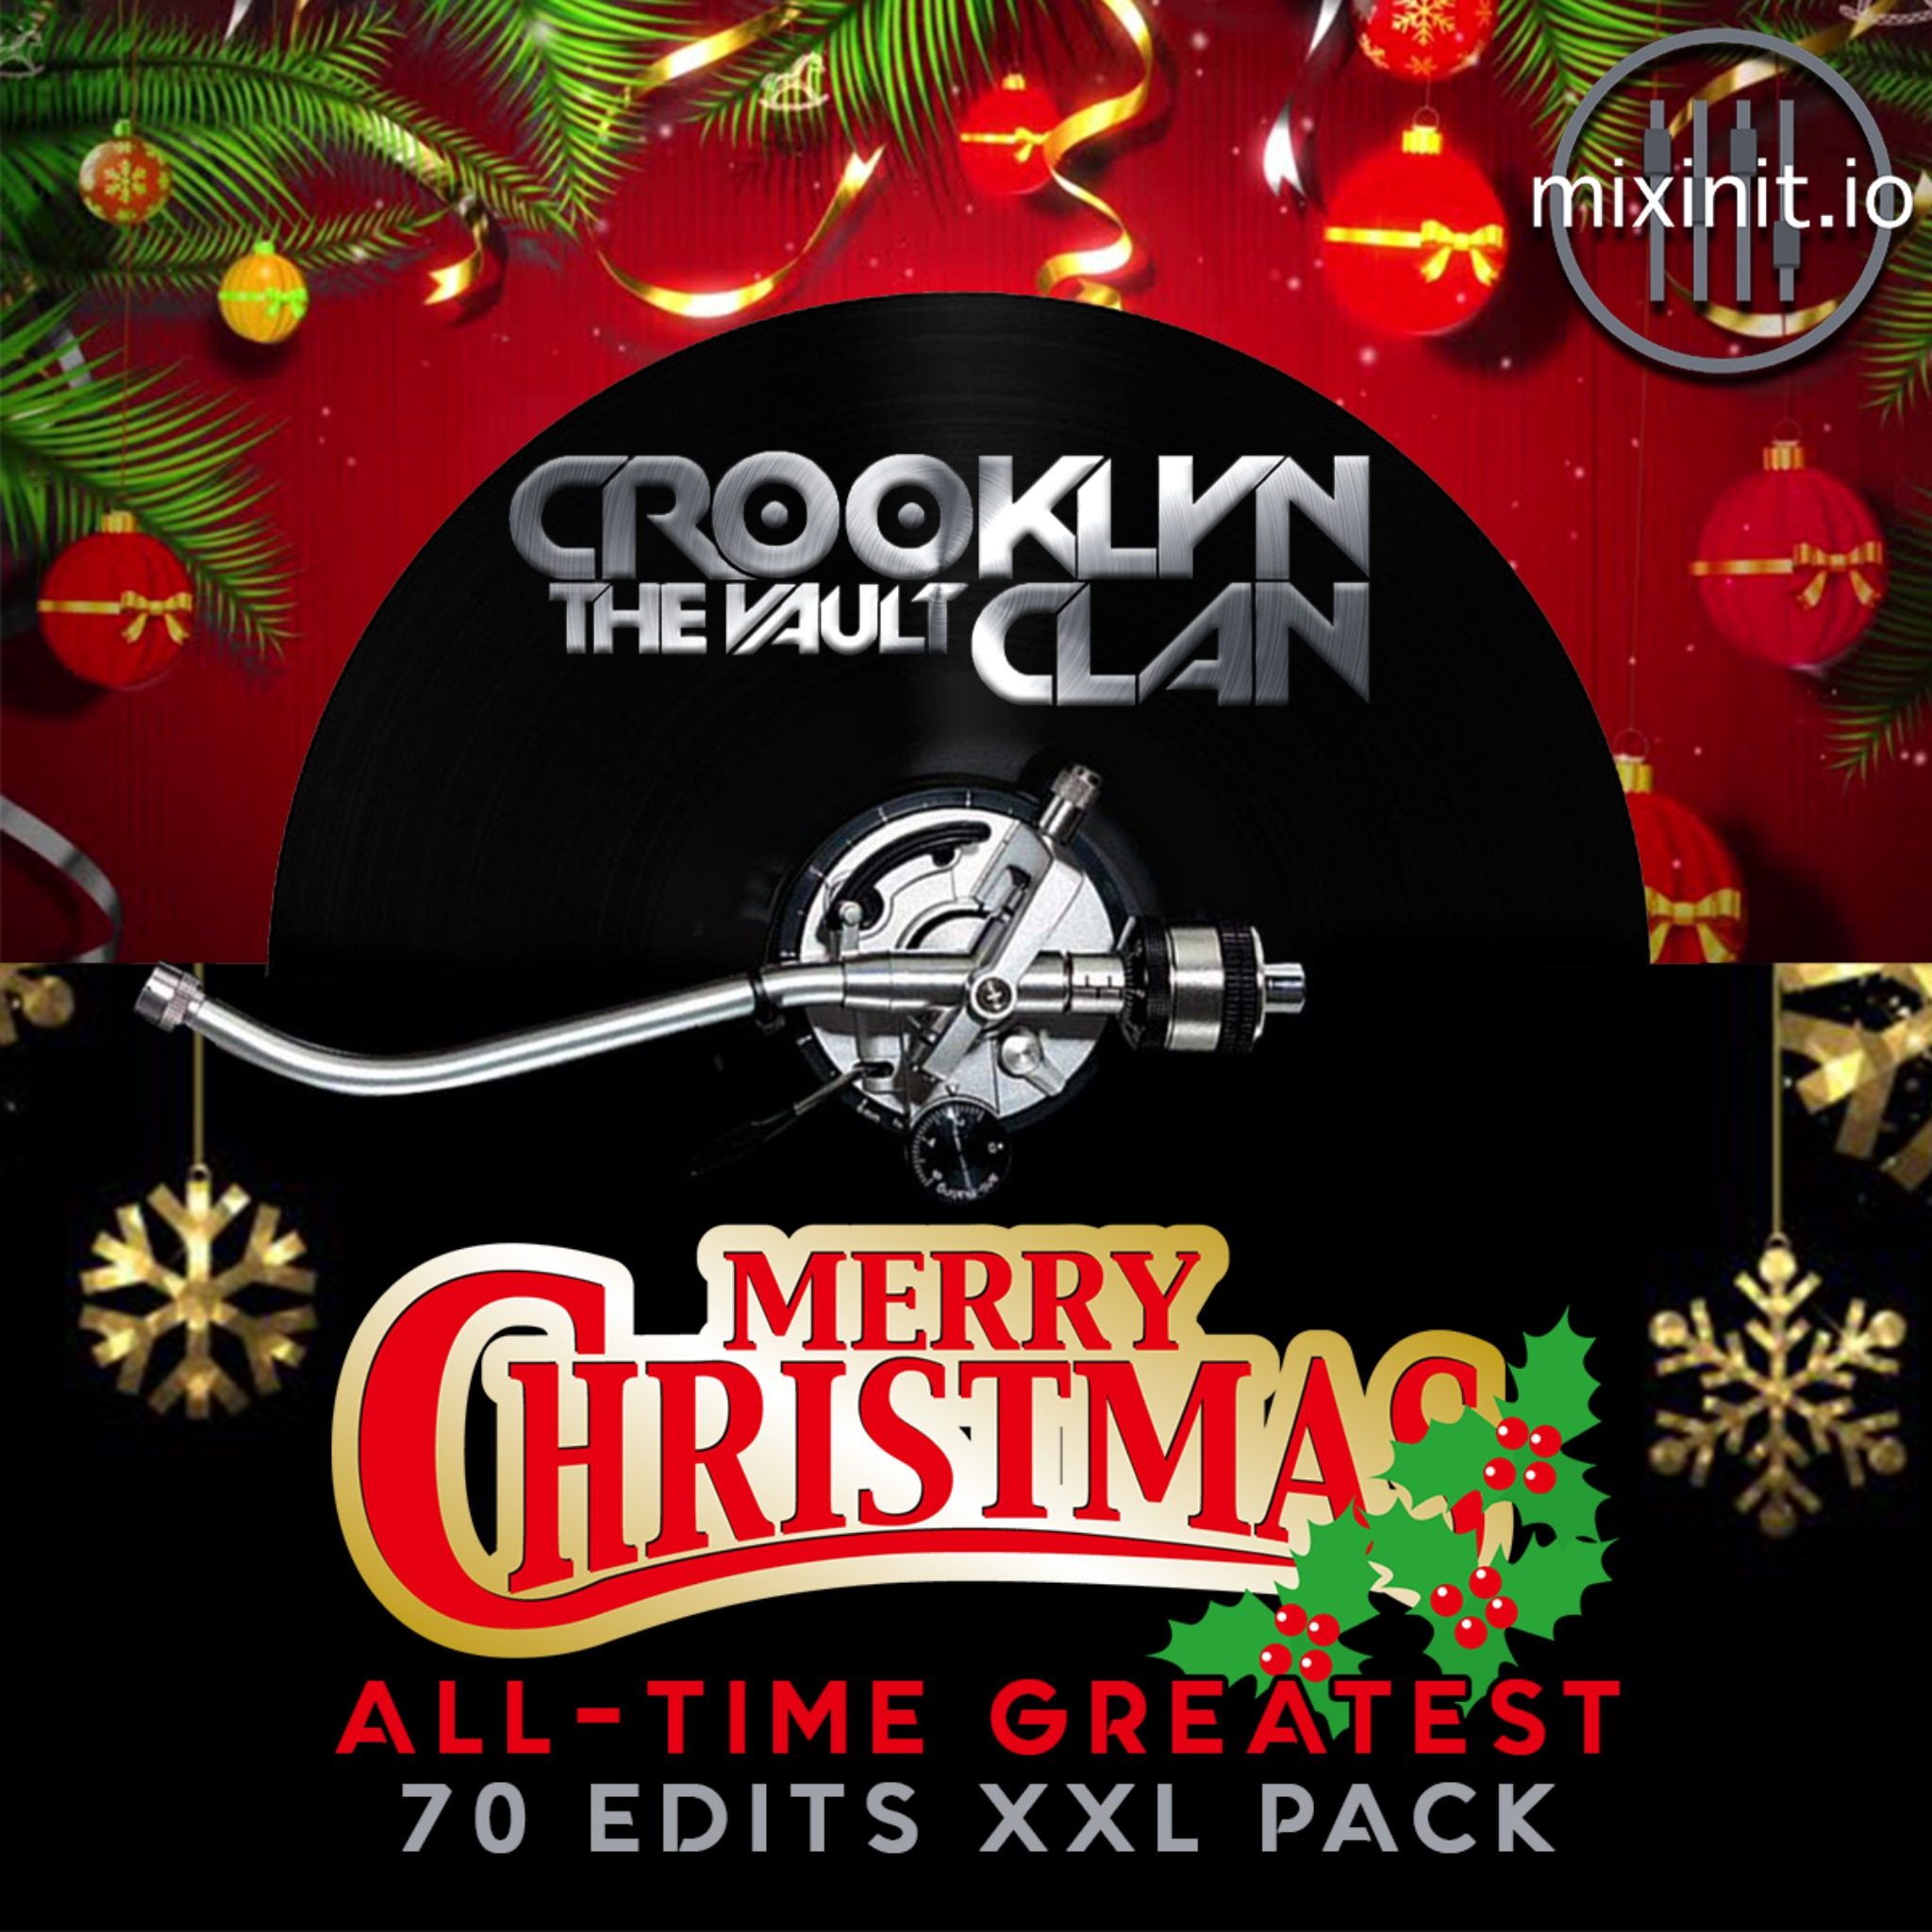 Best Of The Crooklyn Clan Vault Christmas Mega Pack (70 Edits)